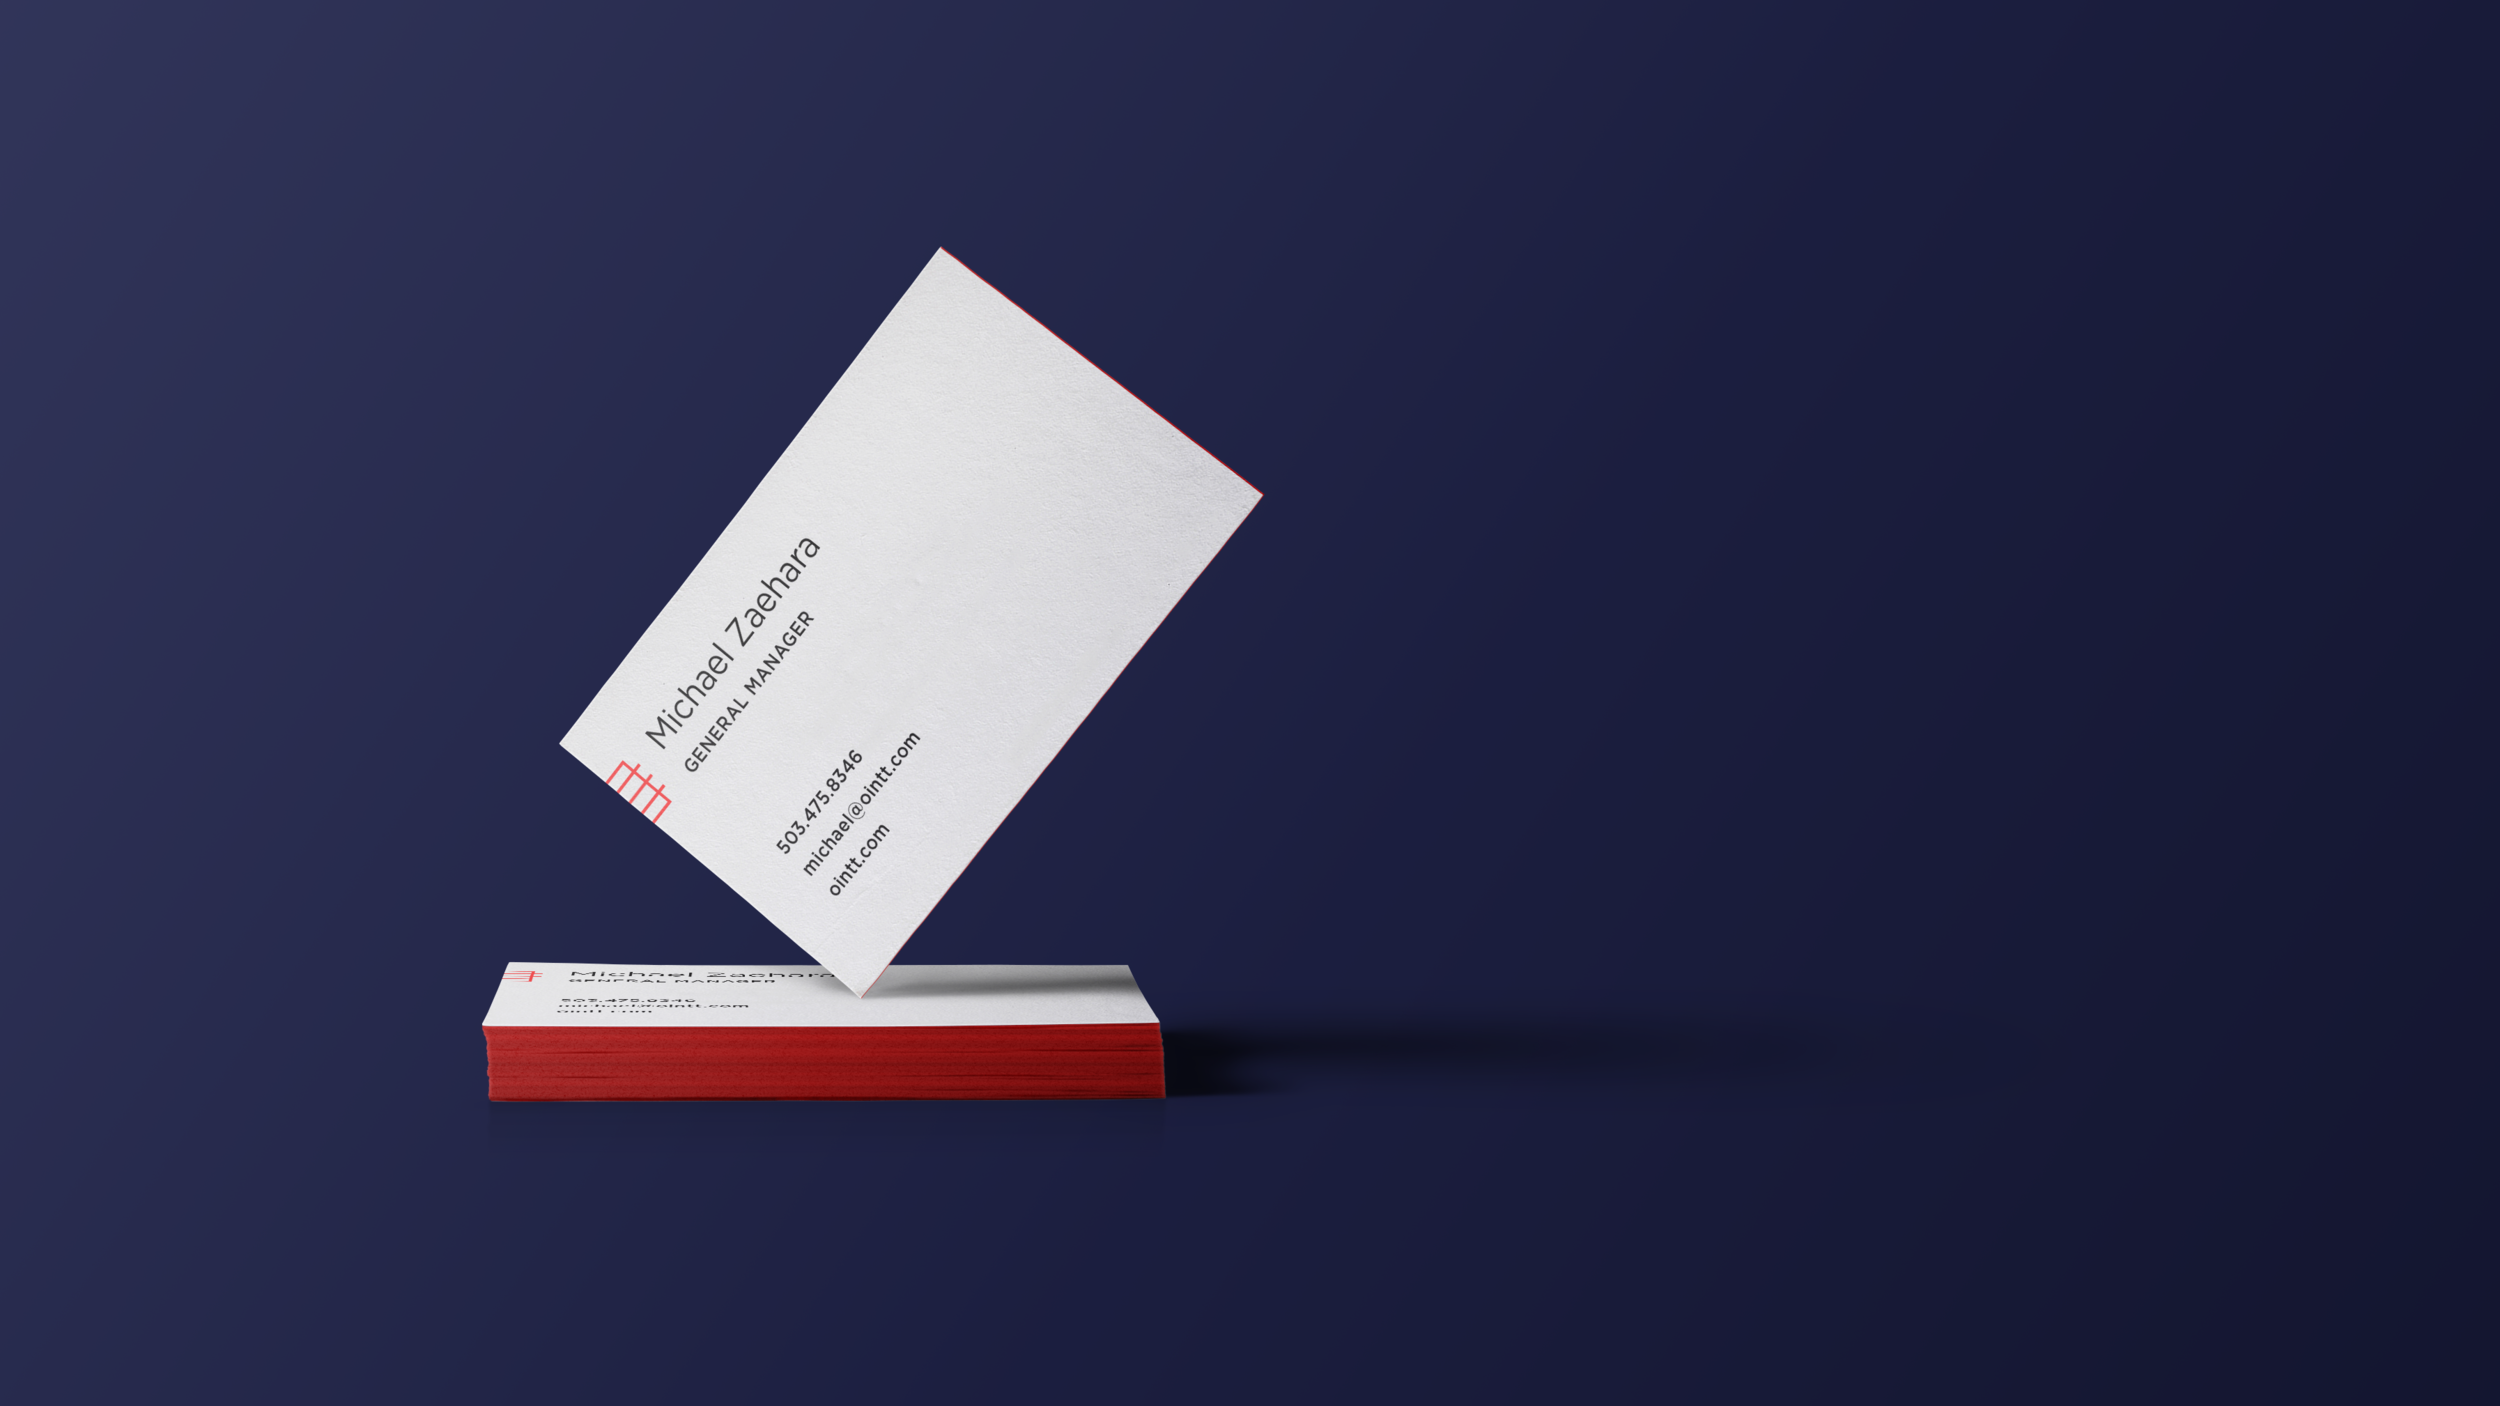 ointt-business-cards-mockup-01.png